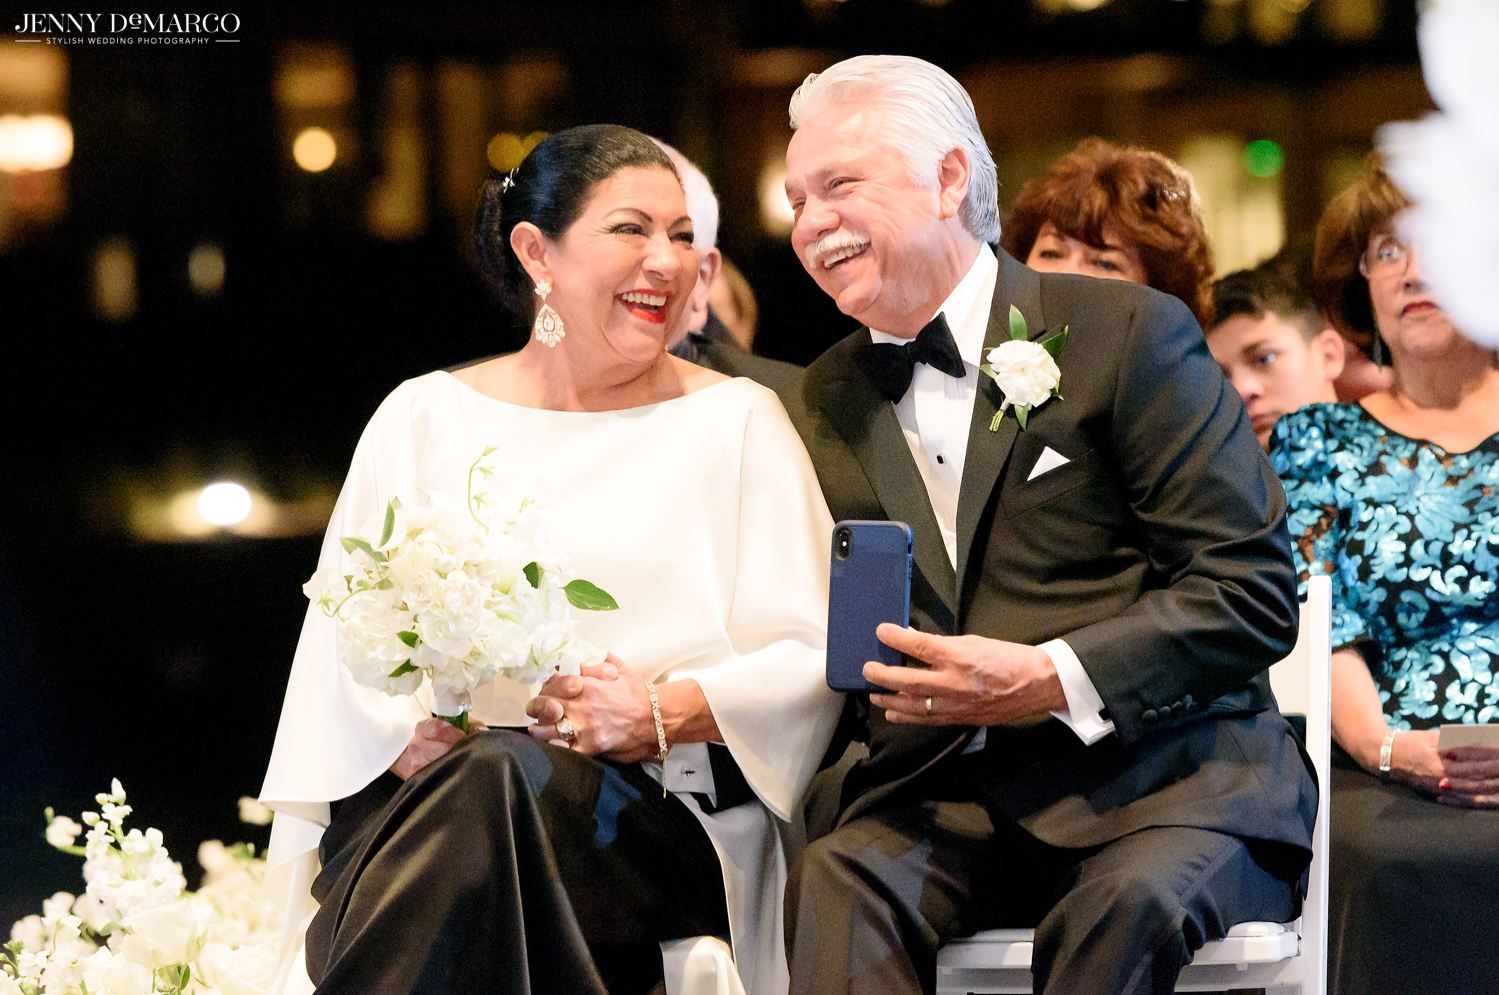 the father and mother of the bride smiling while the father of the bride snaps a photo with his phone